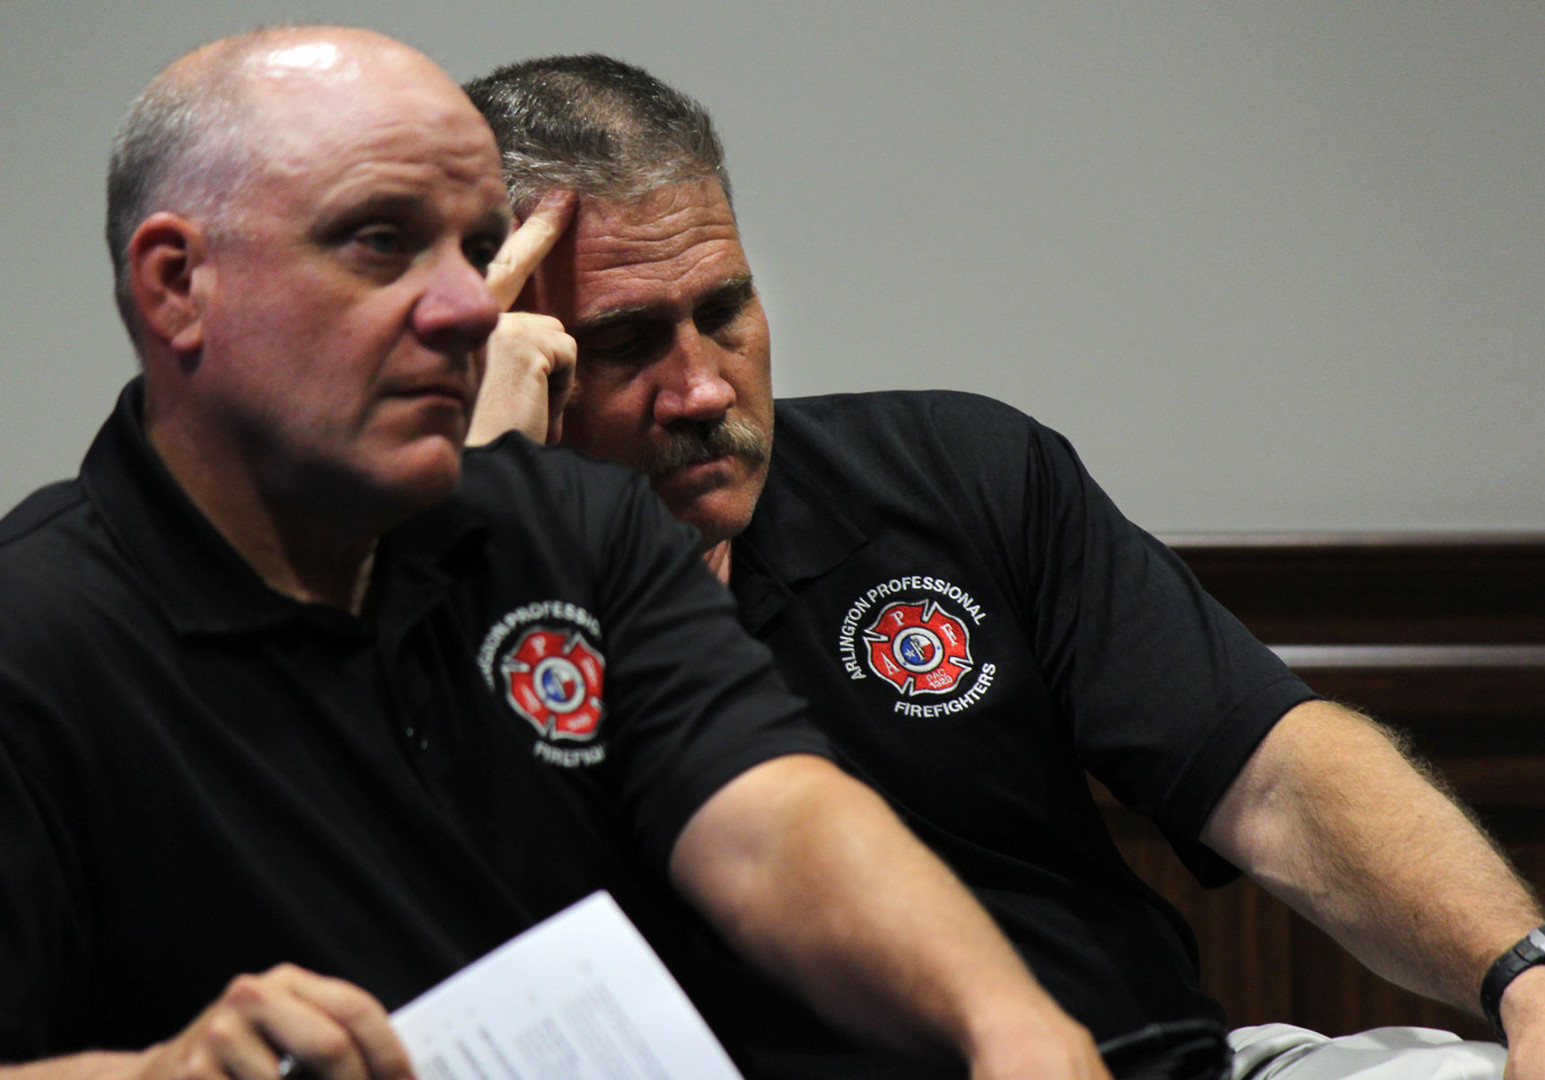 David Crow, right, Arlington Professional Firefighters president and Kevin Leverette, vice president, sit second row during the Oct. 17 City Council meeting to listen to discussion of an ordinance regarding fire departments, at Arlington City Hall. The ordinance would establish fire department civil service job classifications, special pay and sick and vacation leave for certain members in the department.